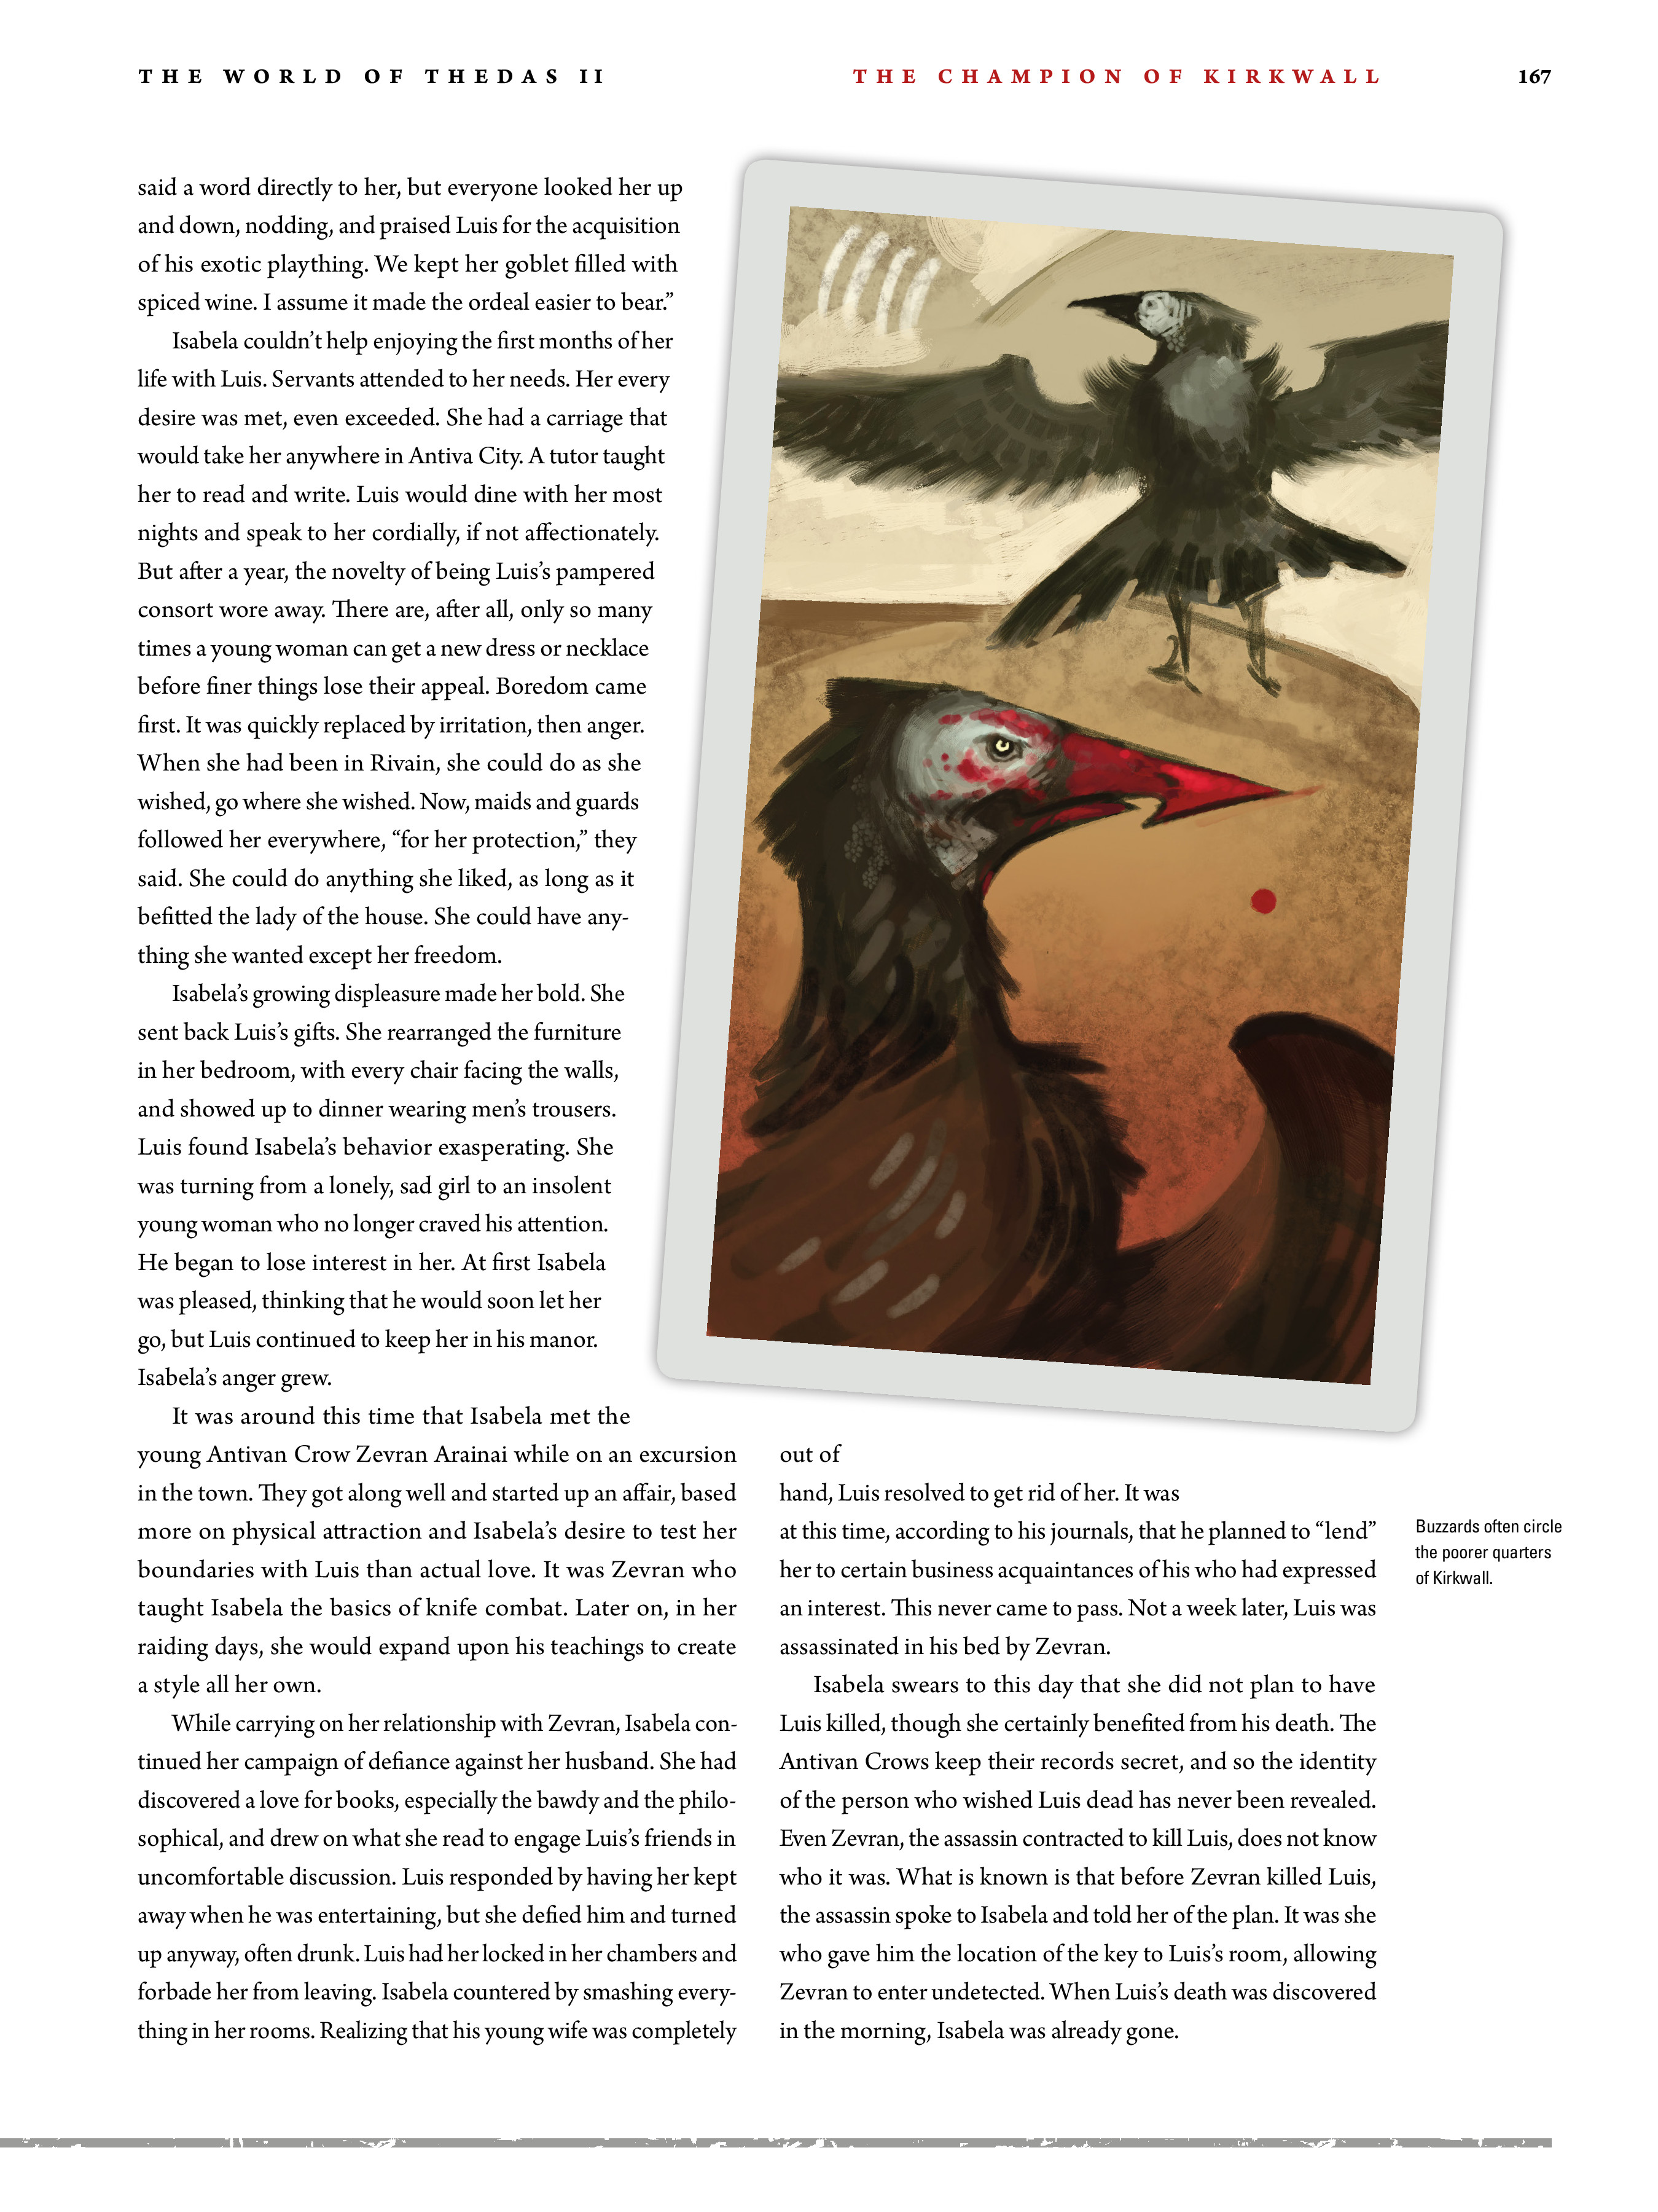 Read online Dragon Age: The World of Thedas comic -  Issue # TPB 2 - 162